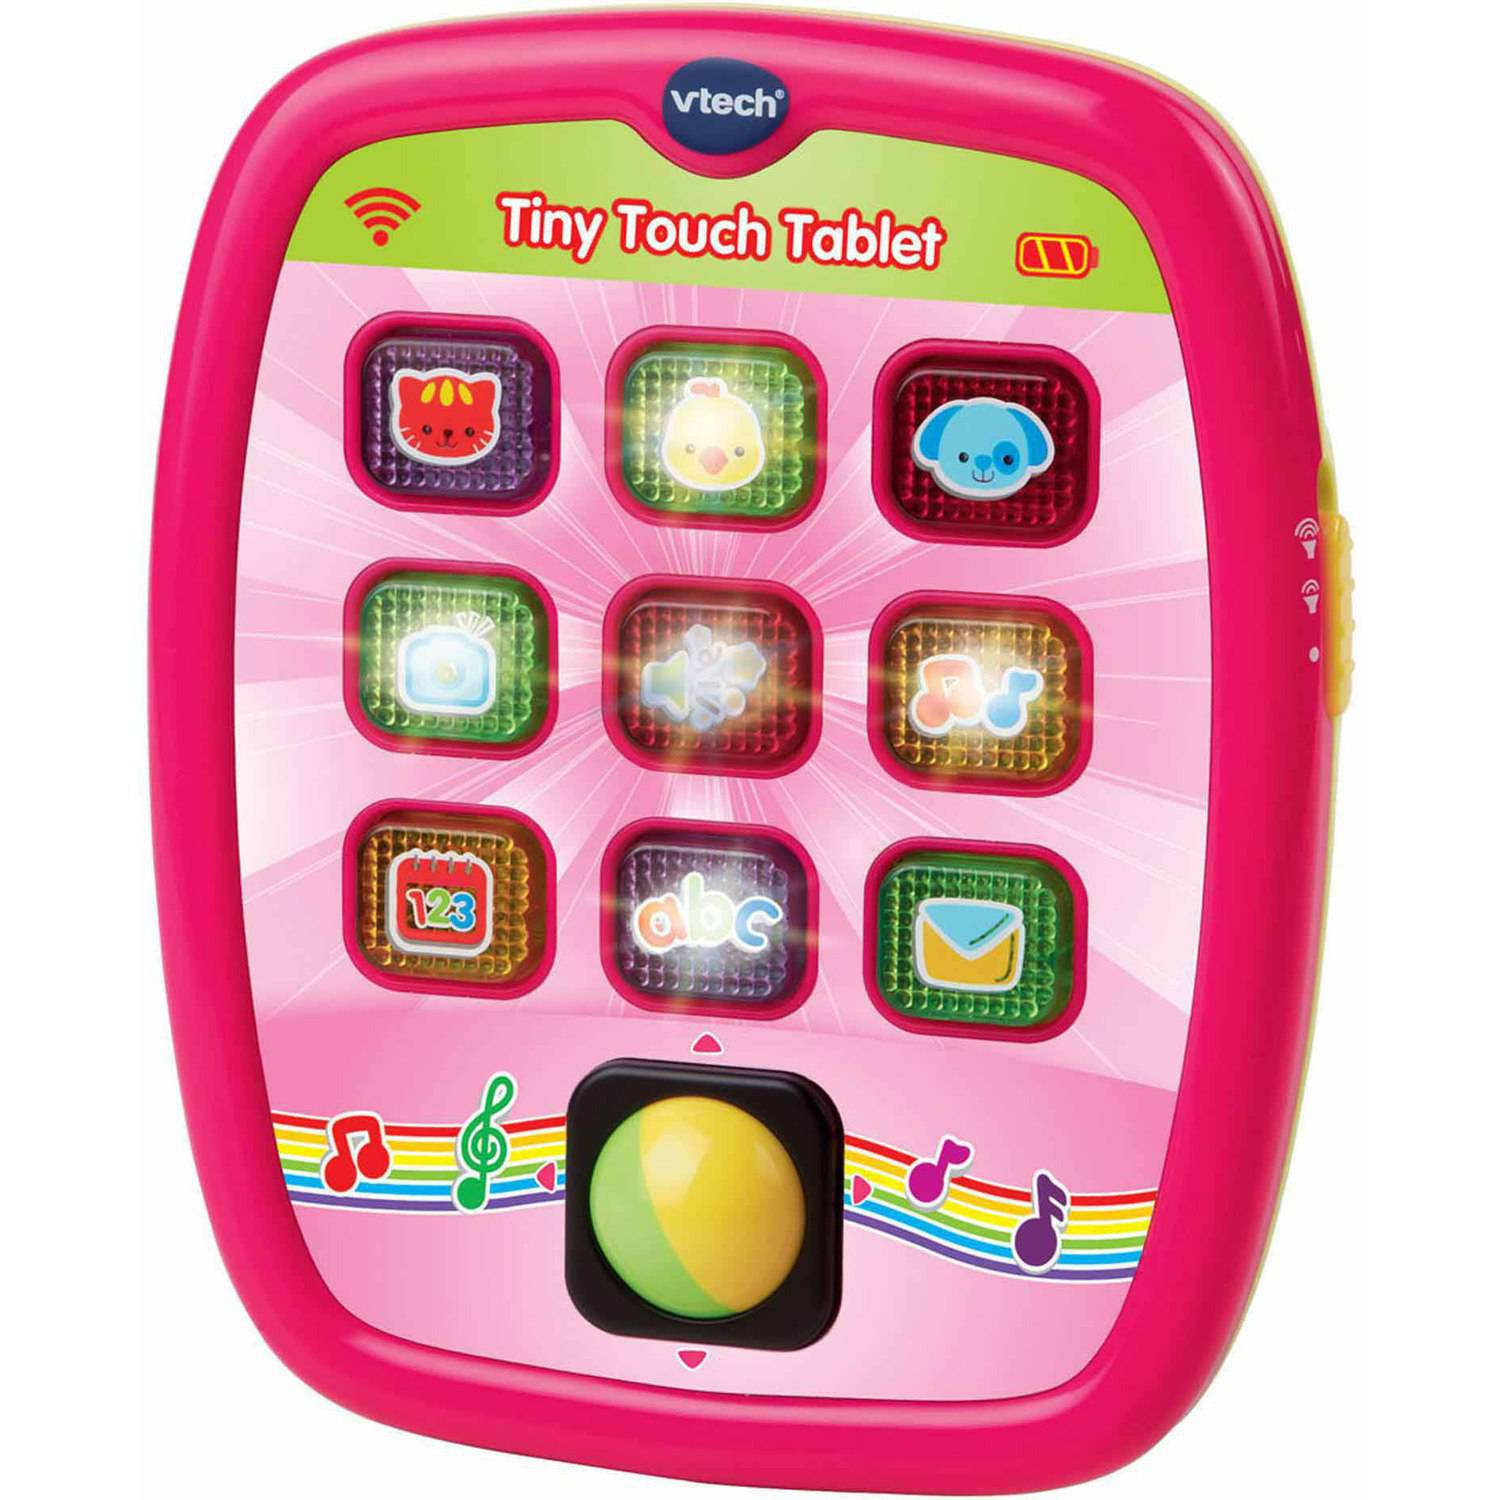 VTech Tiny Touch Tablet, Pink by VTech